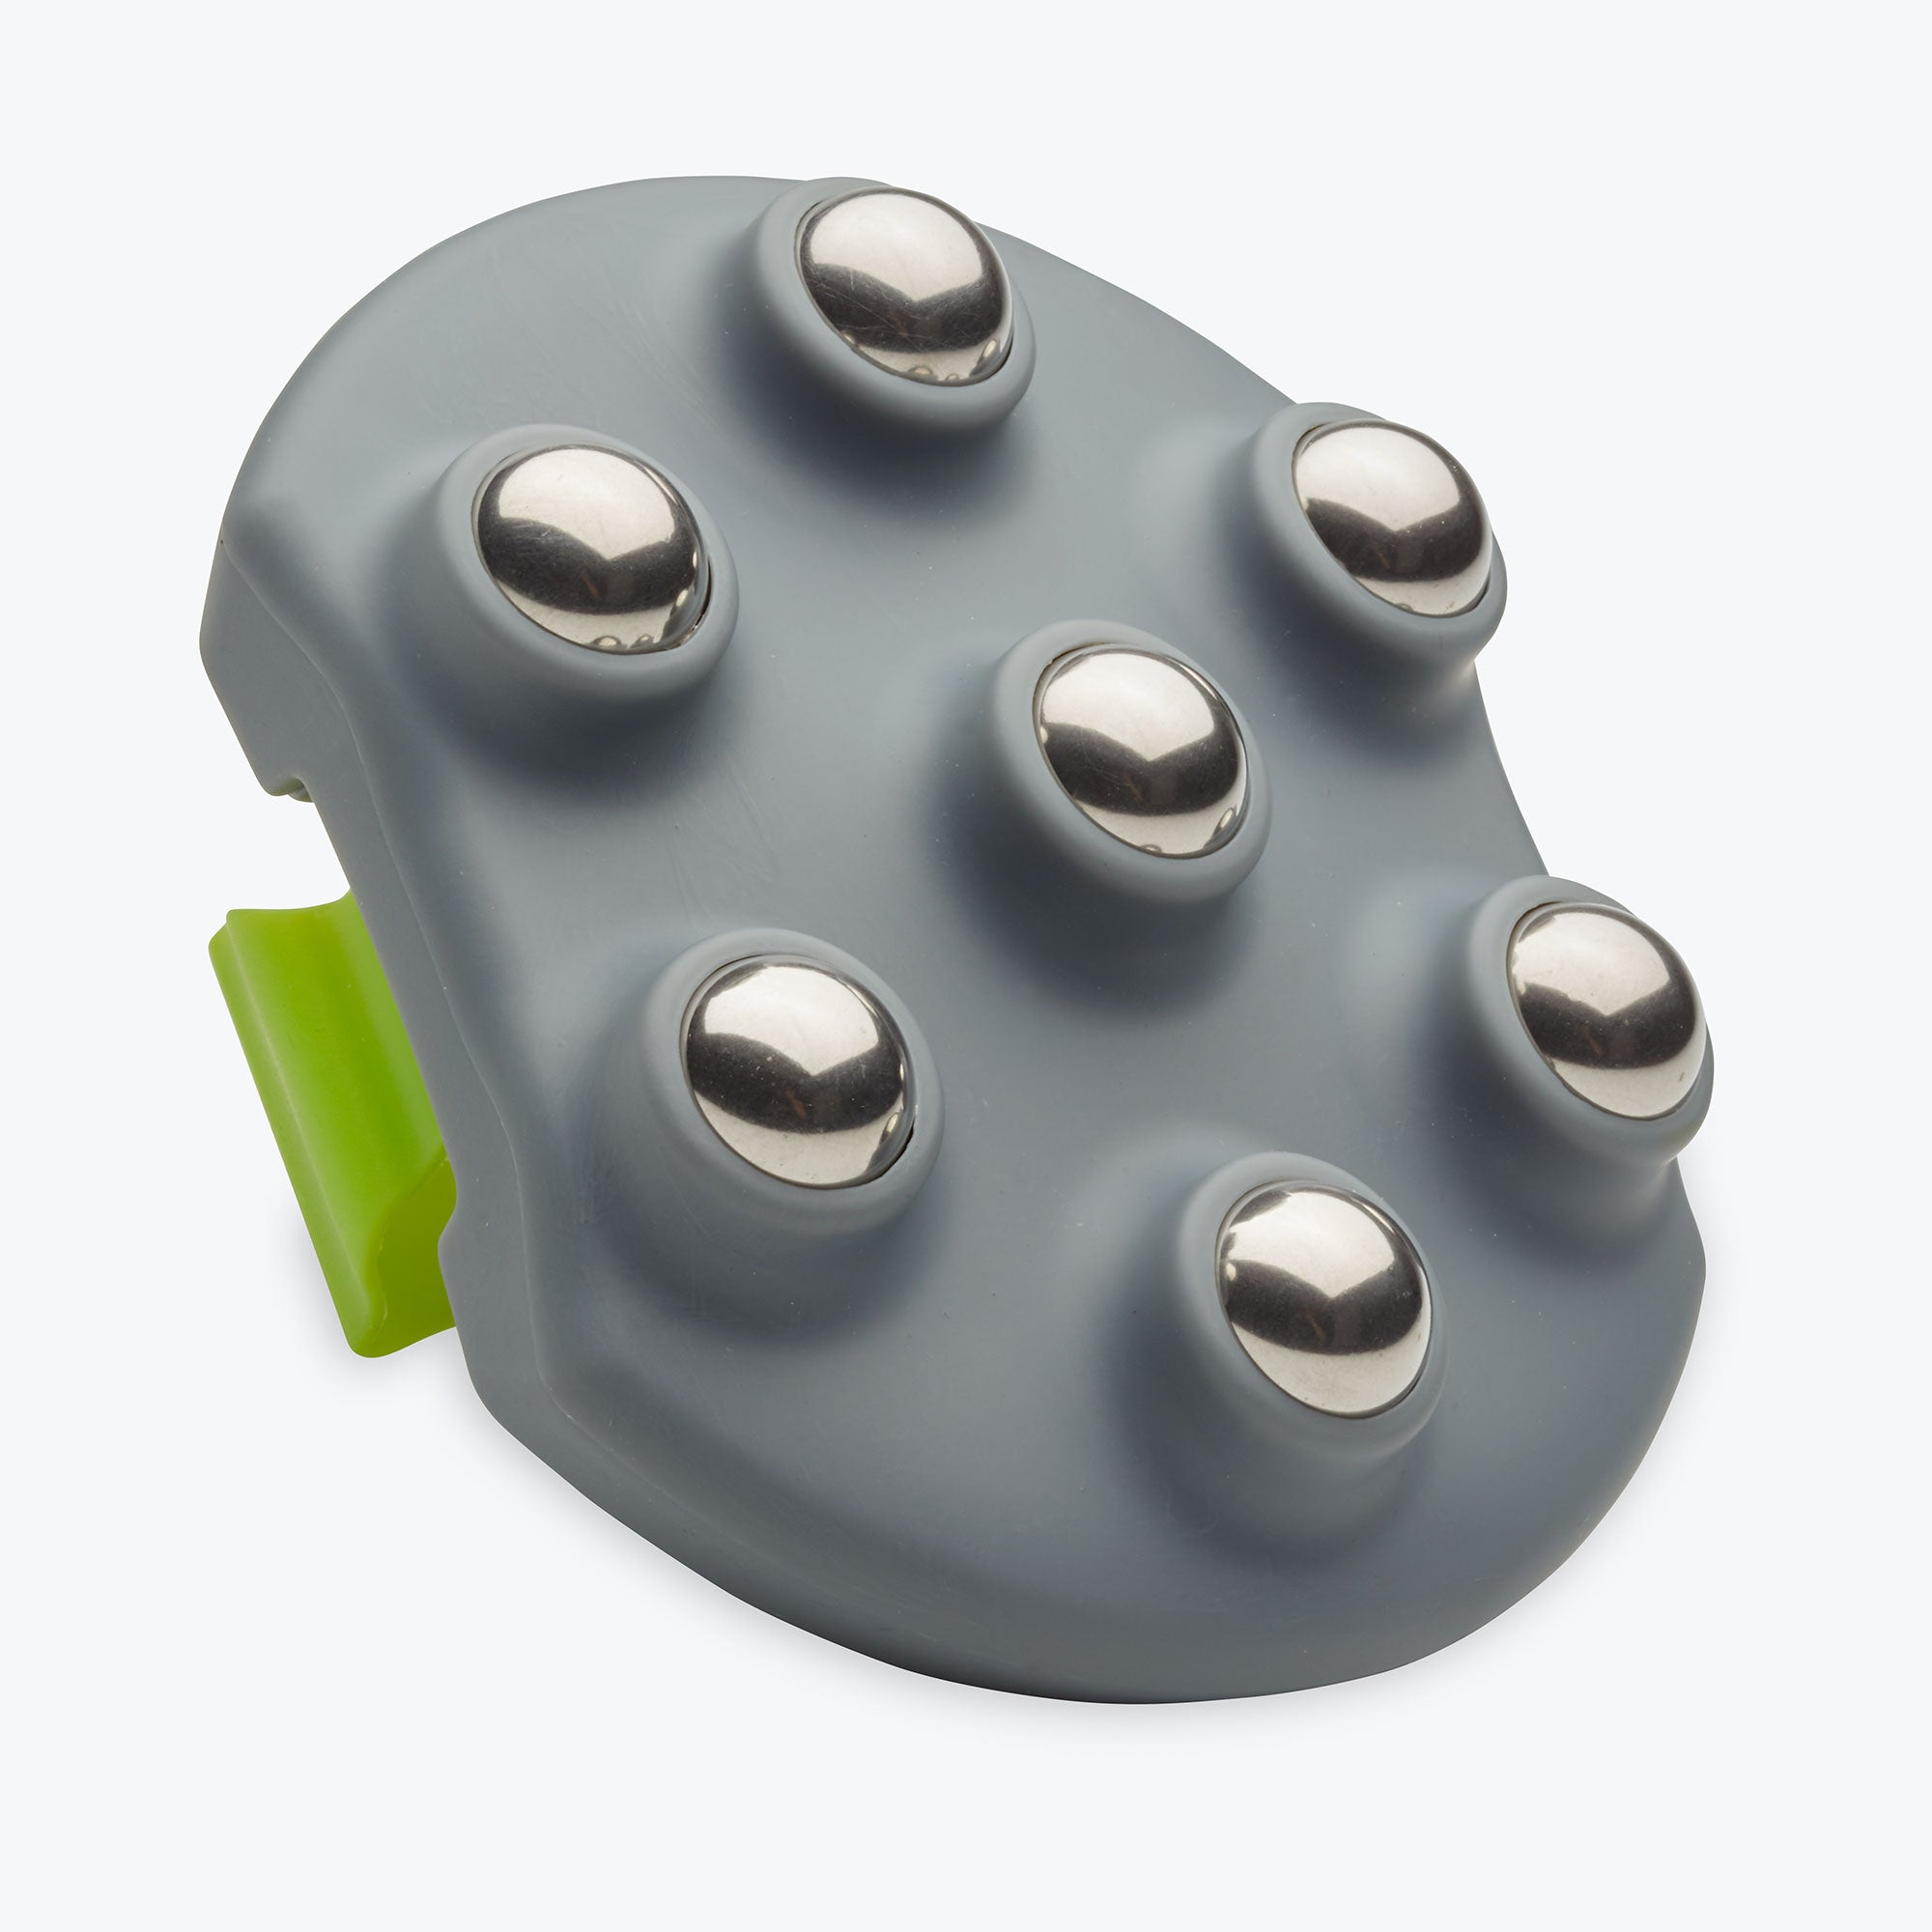 Image of Restore Cold Therapy Total Body Massager